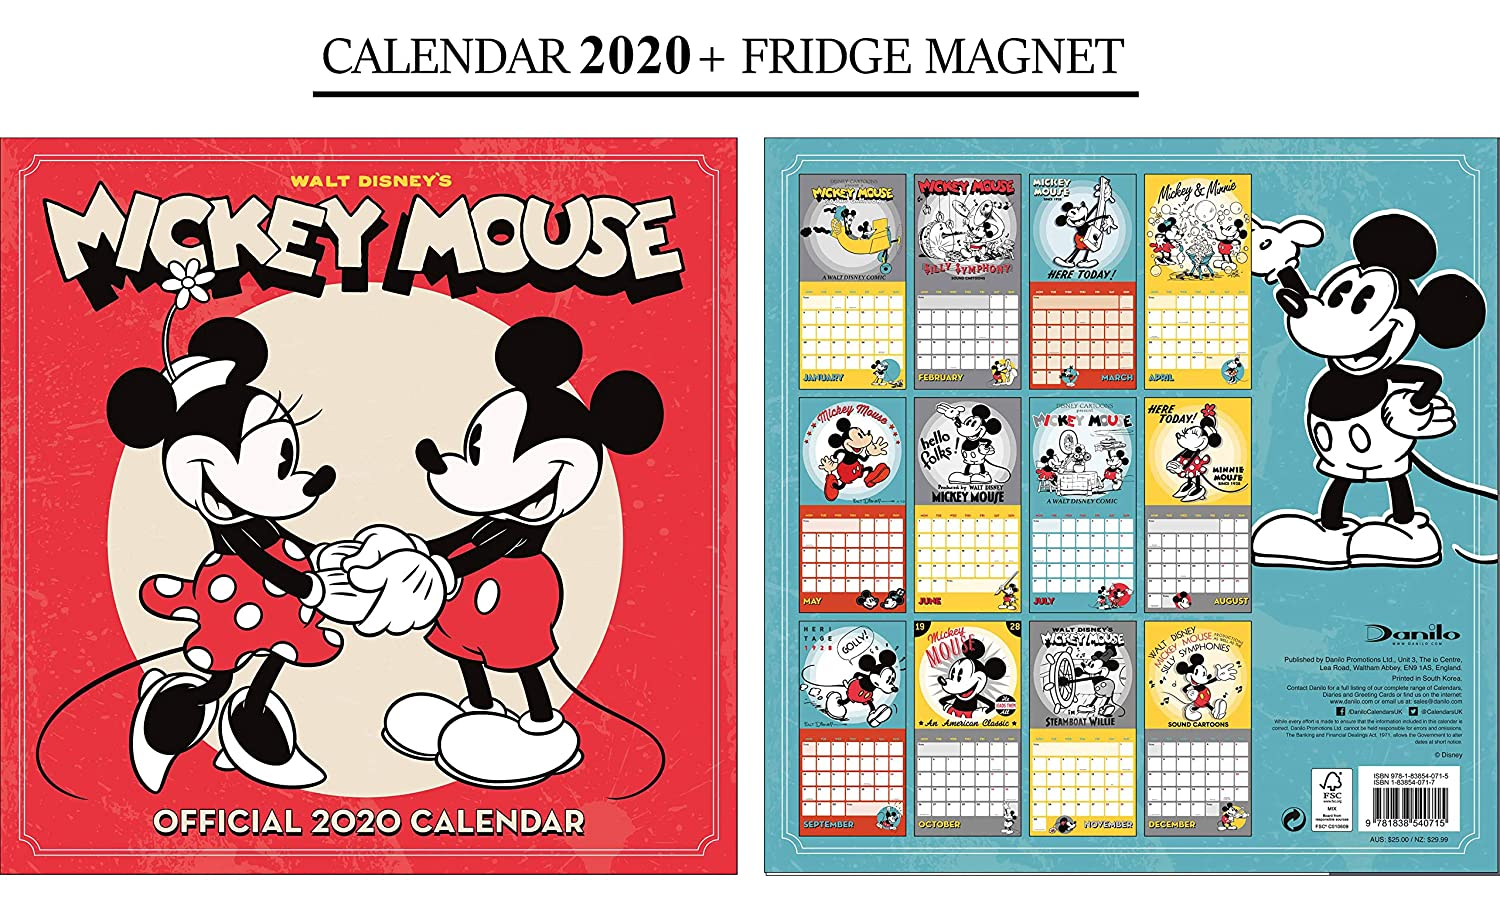 Calendario oficial de Disney Mickey Mouse 2020 + imán de Mickey ...